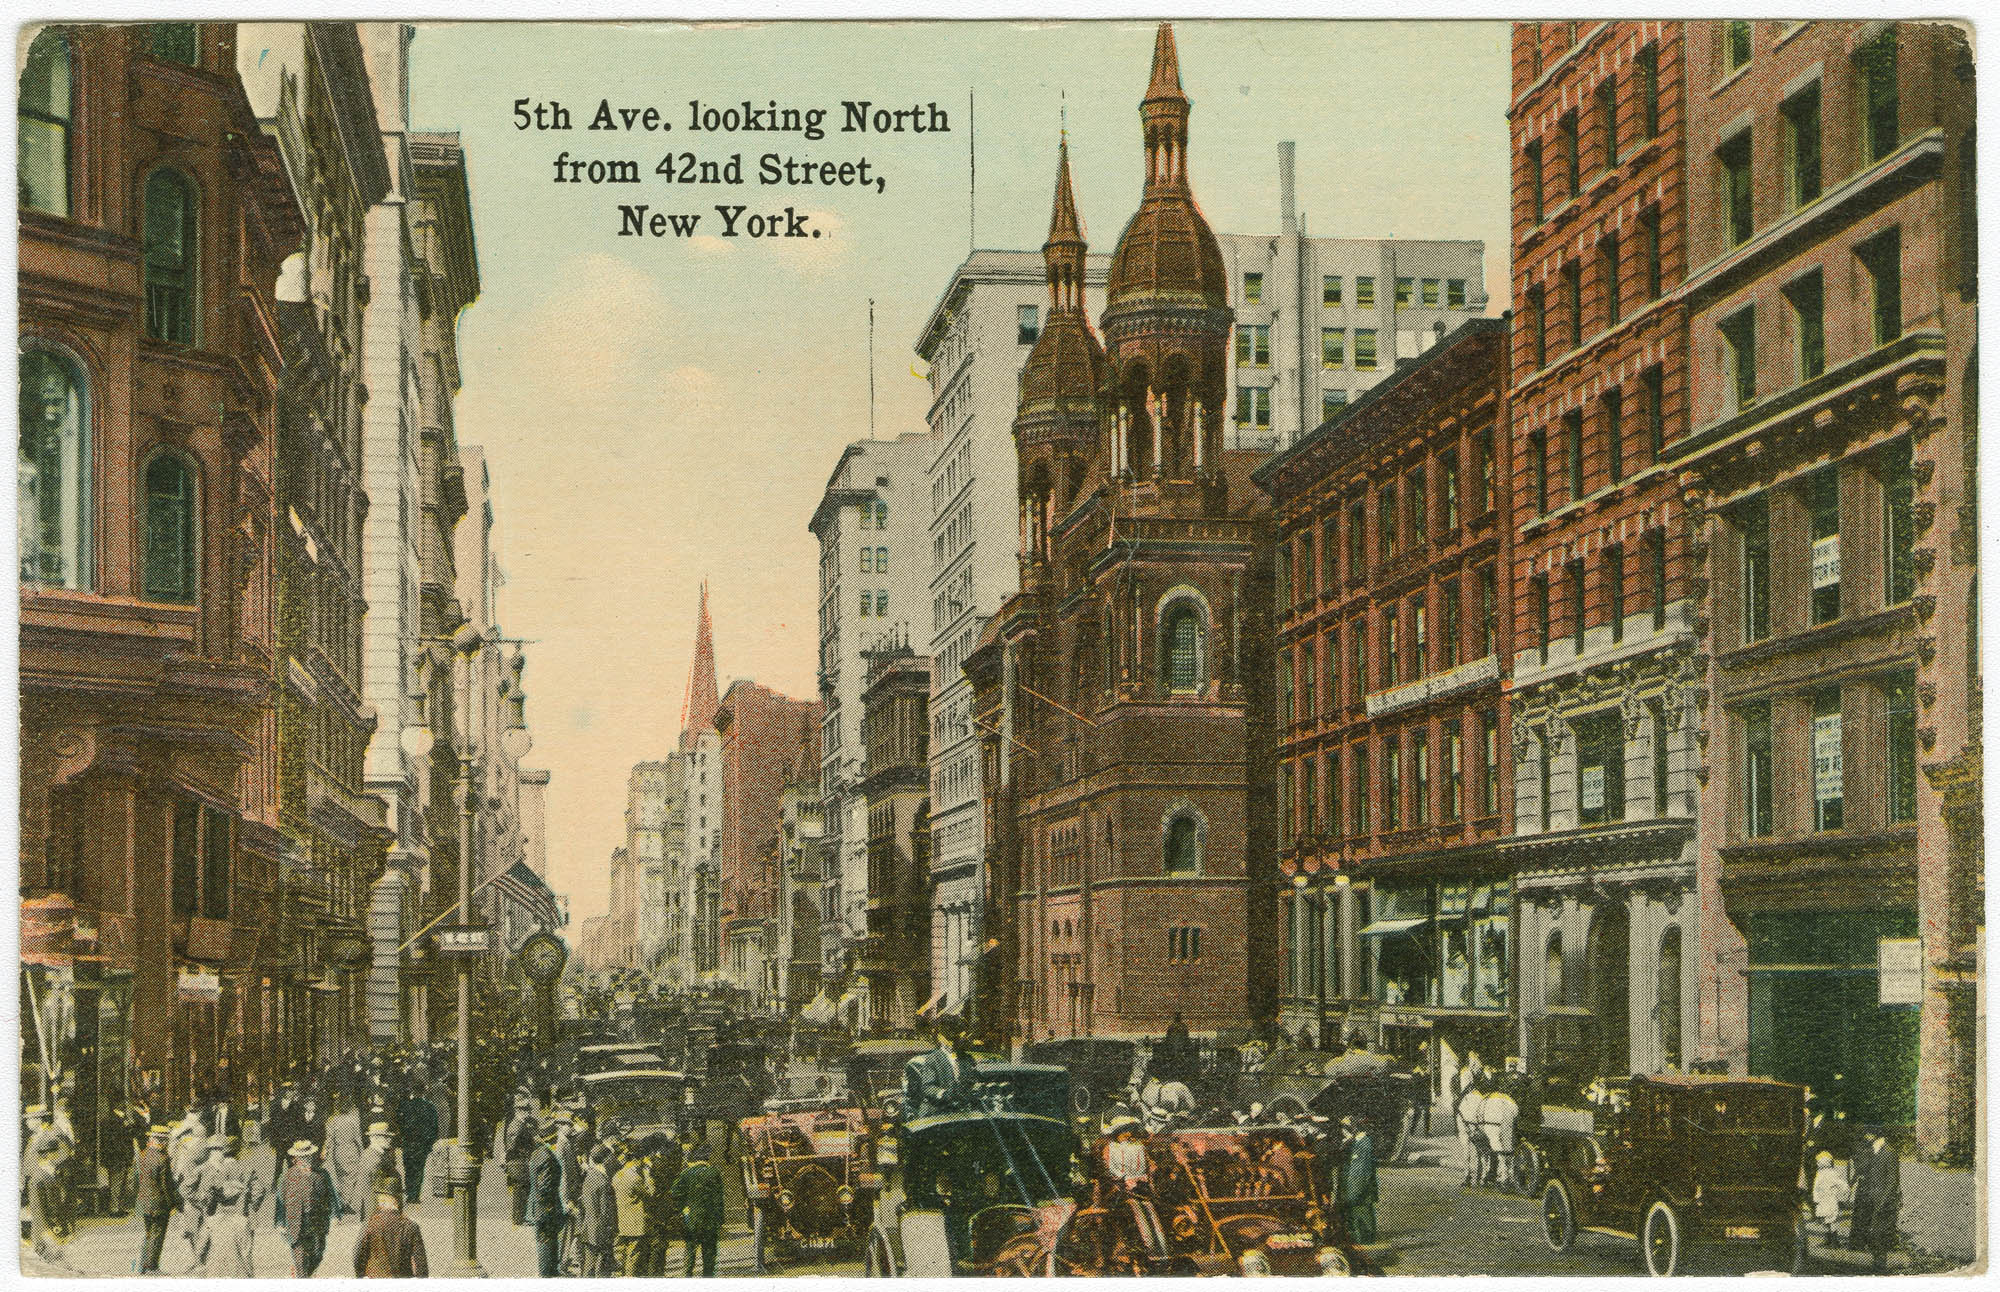 5th Ave. looking North from 42nd Street, New York